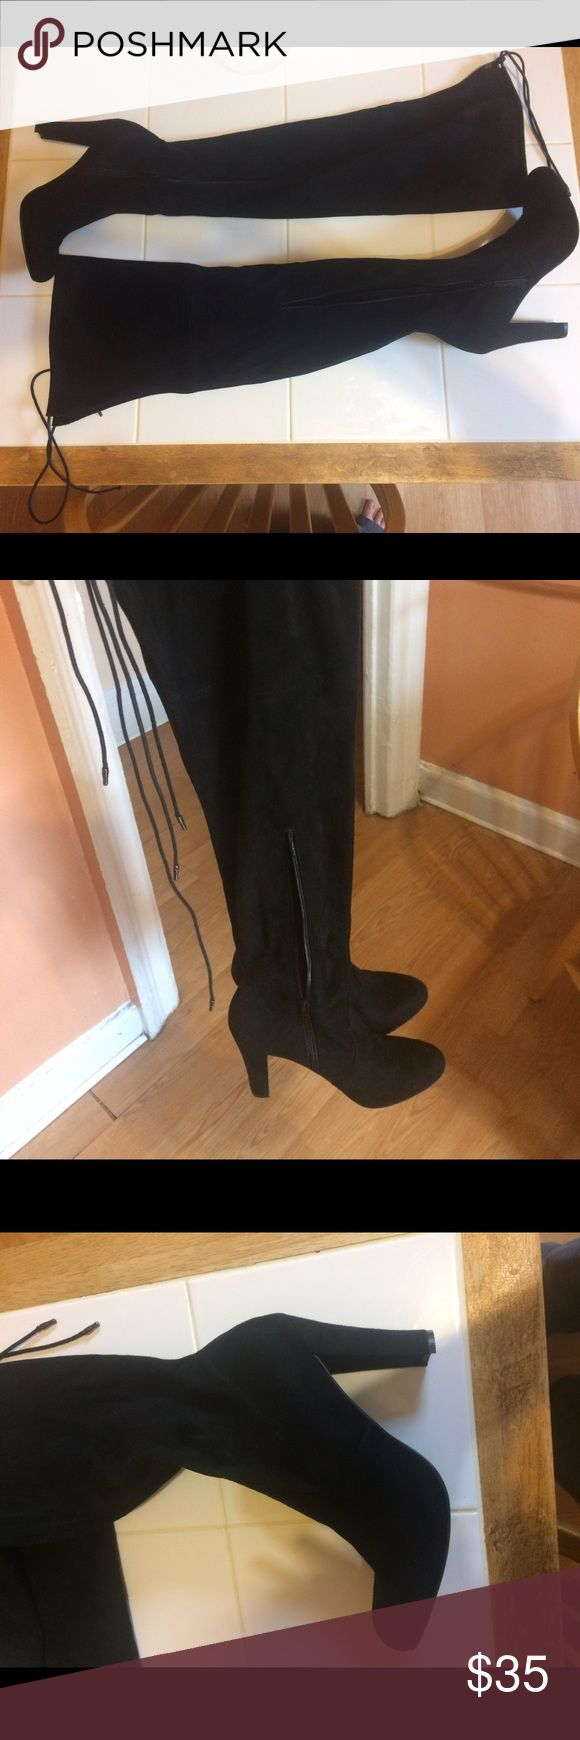 Black Thigh High Boots Brand new pair of black thigh high boot heels from Target! Never worn before. Has a tie behind the thigh. Zips on inside of ankle. Journee Collection Shoes Over the Knee Boots